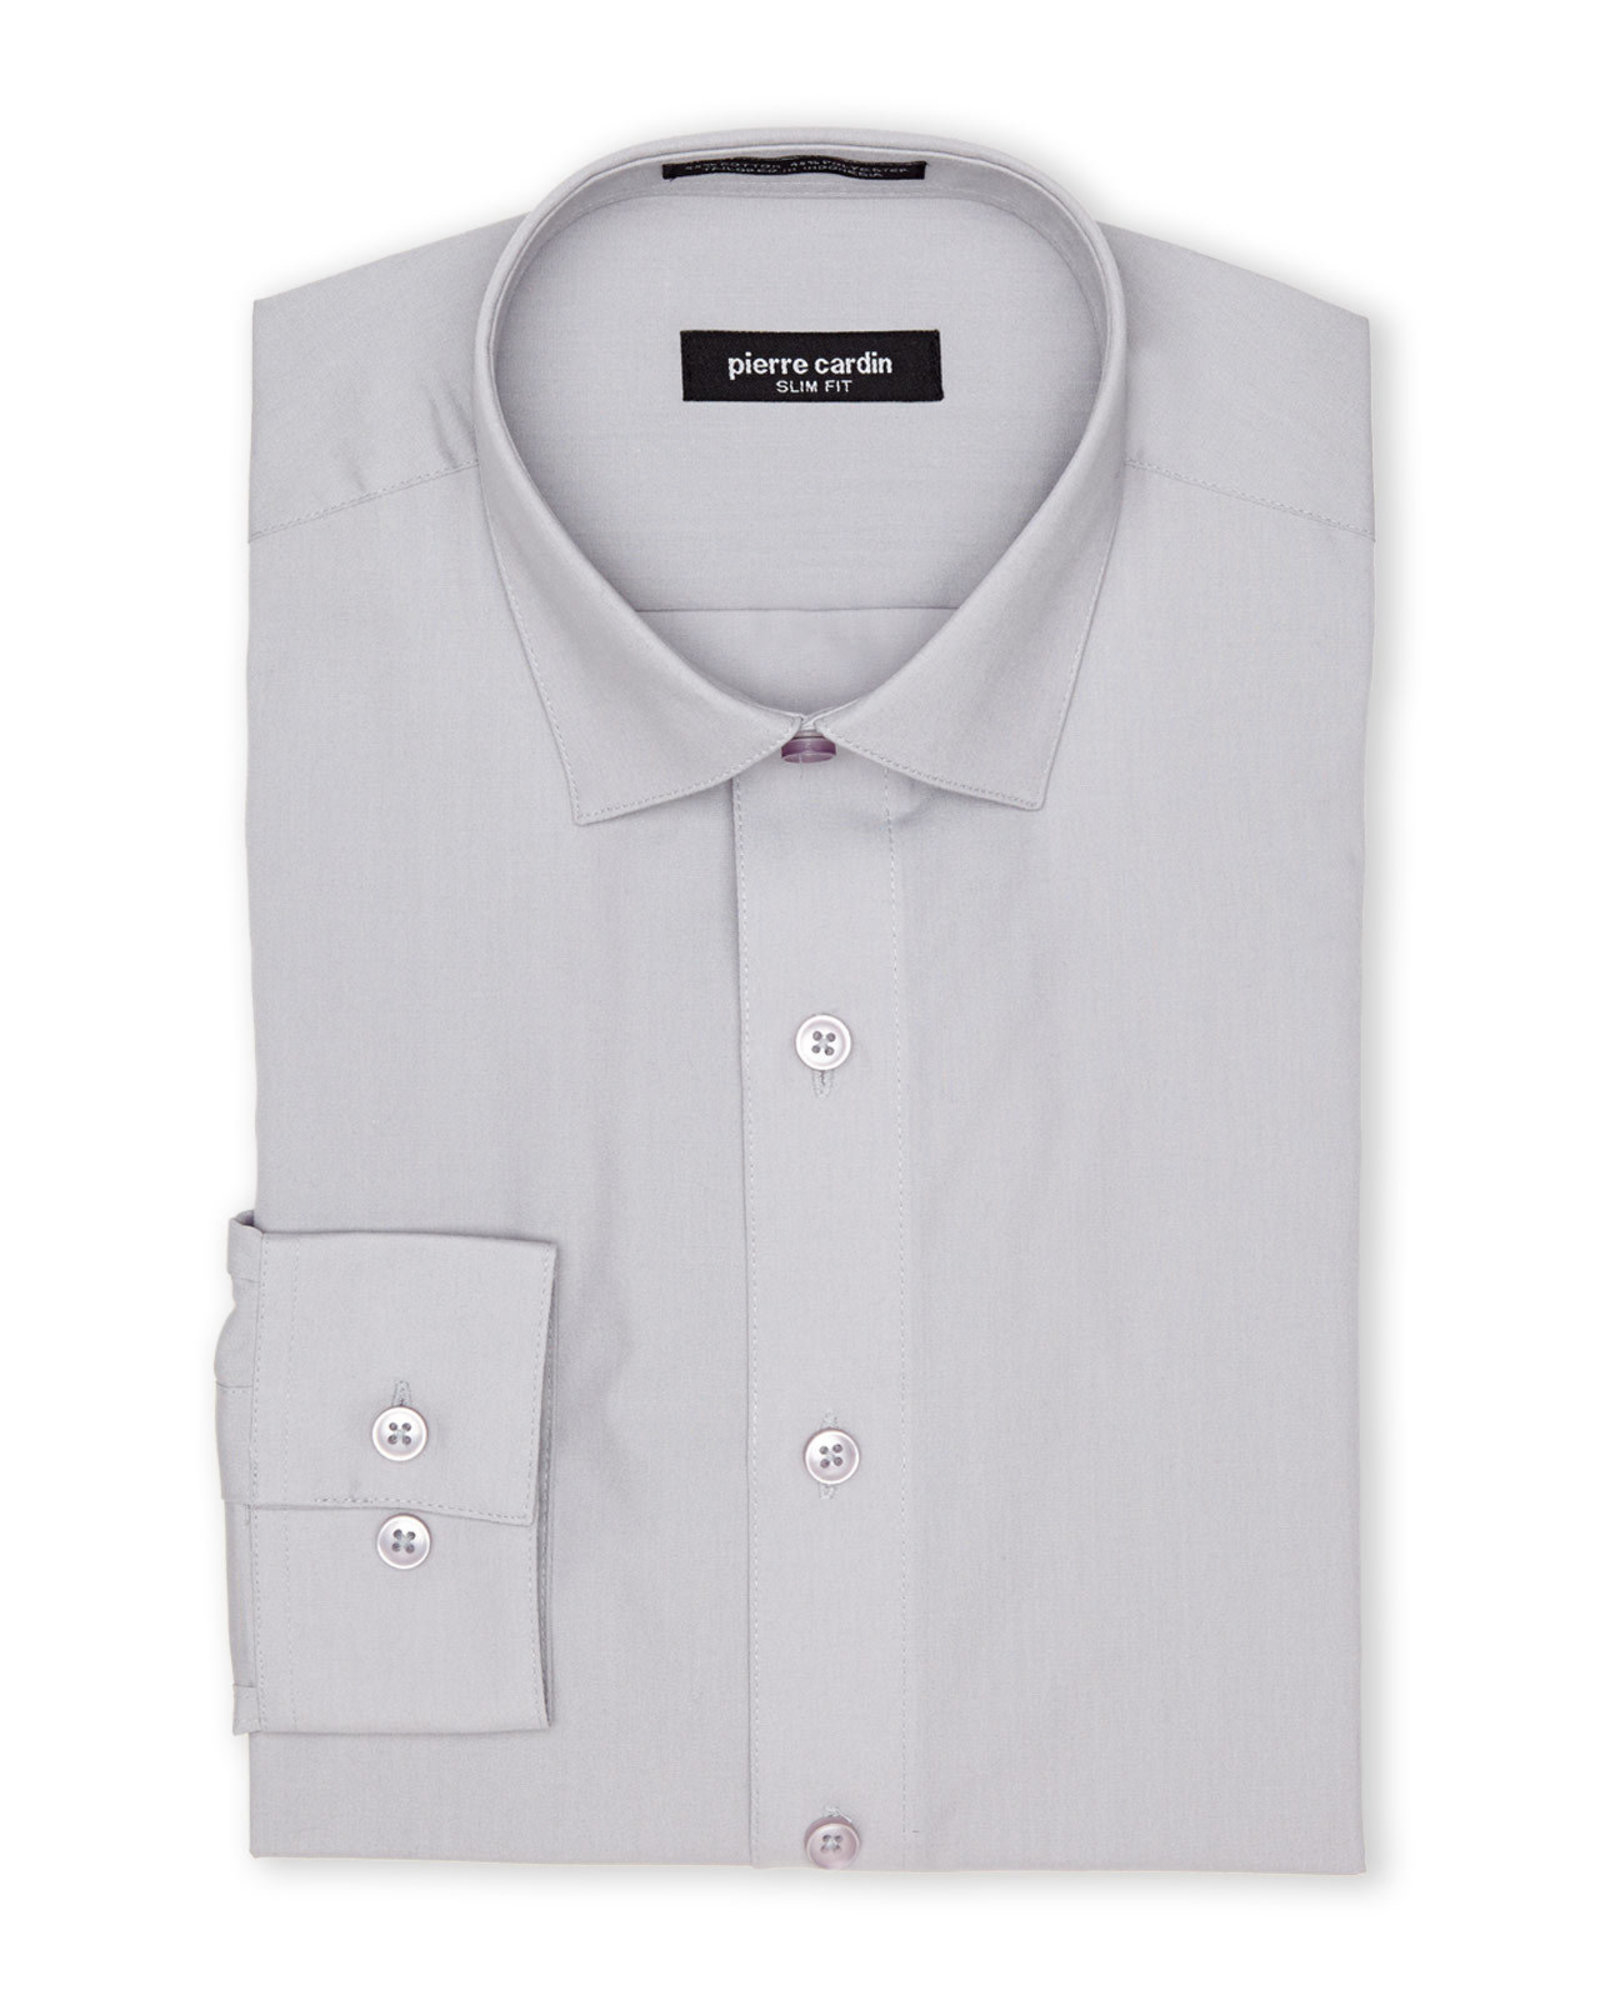 pierre cardin grey slim fit dress shirt in gray for men lyst